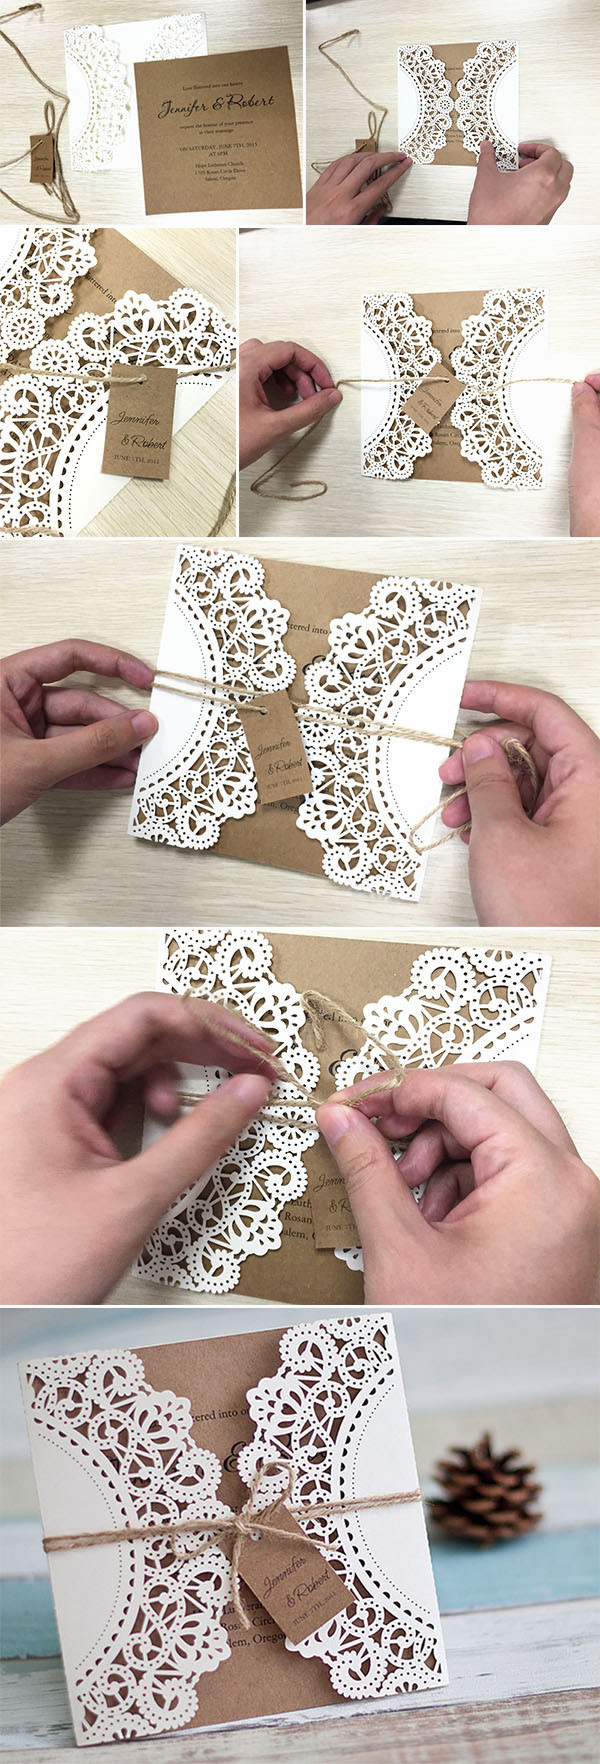 Best ideas about DIY Laser Cut Wedding Invitations . Save or Pin DIY Wedding Ideas 10 Perfect Ways To Use Paper For Weddings Now.